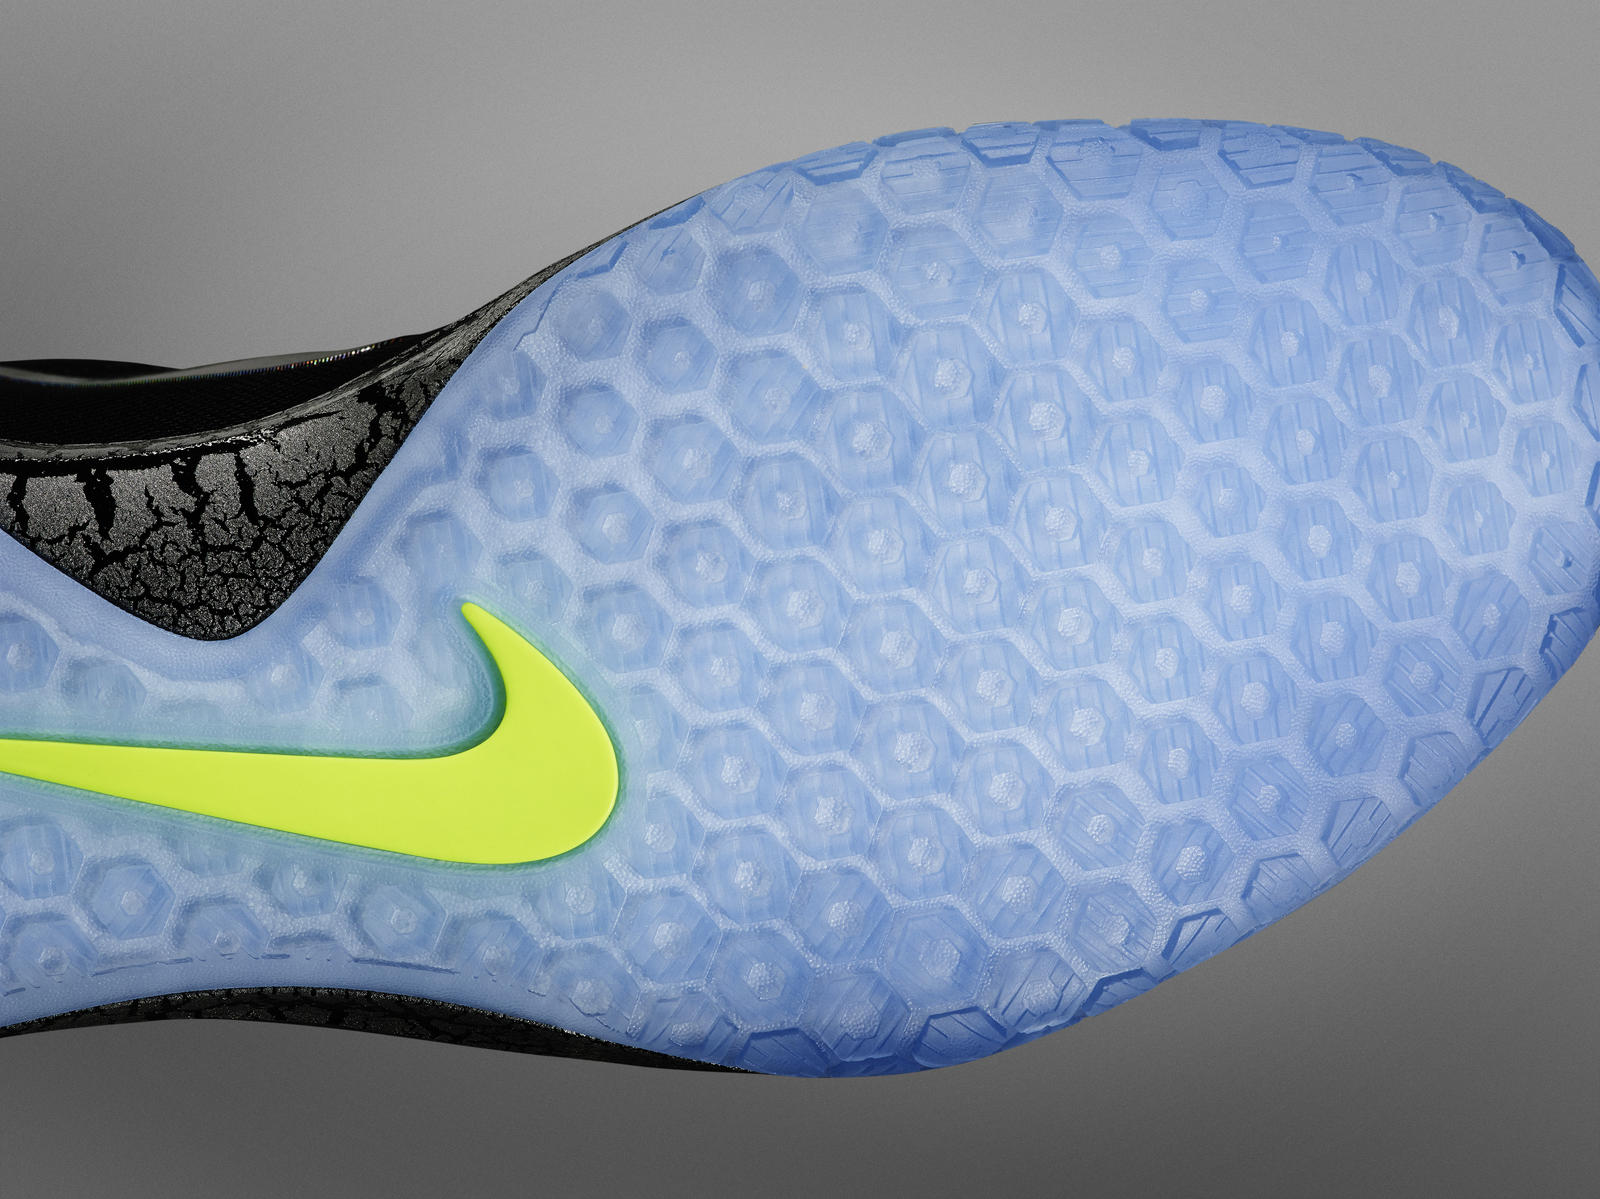 Introducing the Nike Hyperchase Basketball Shoe for